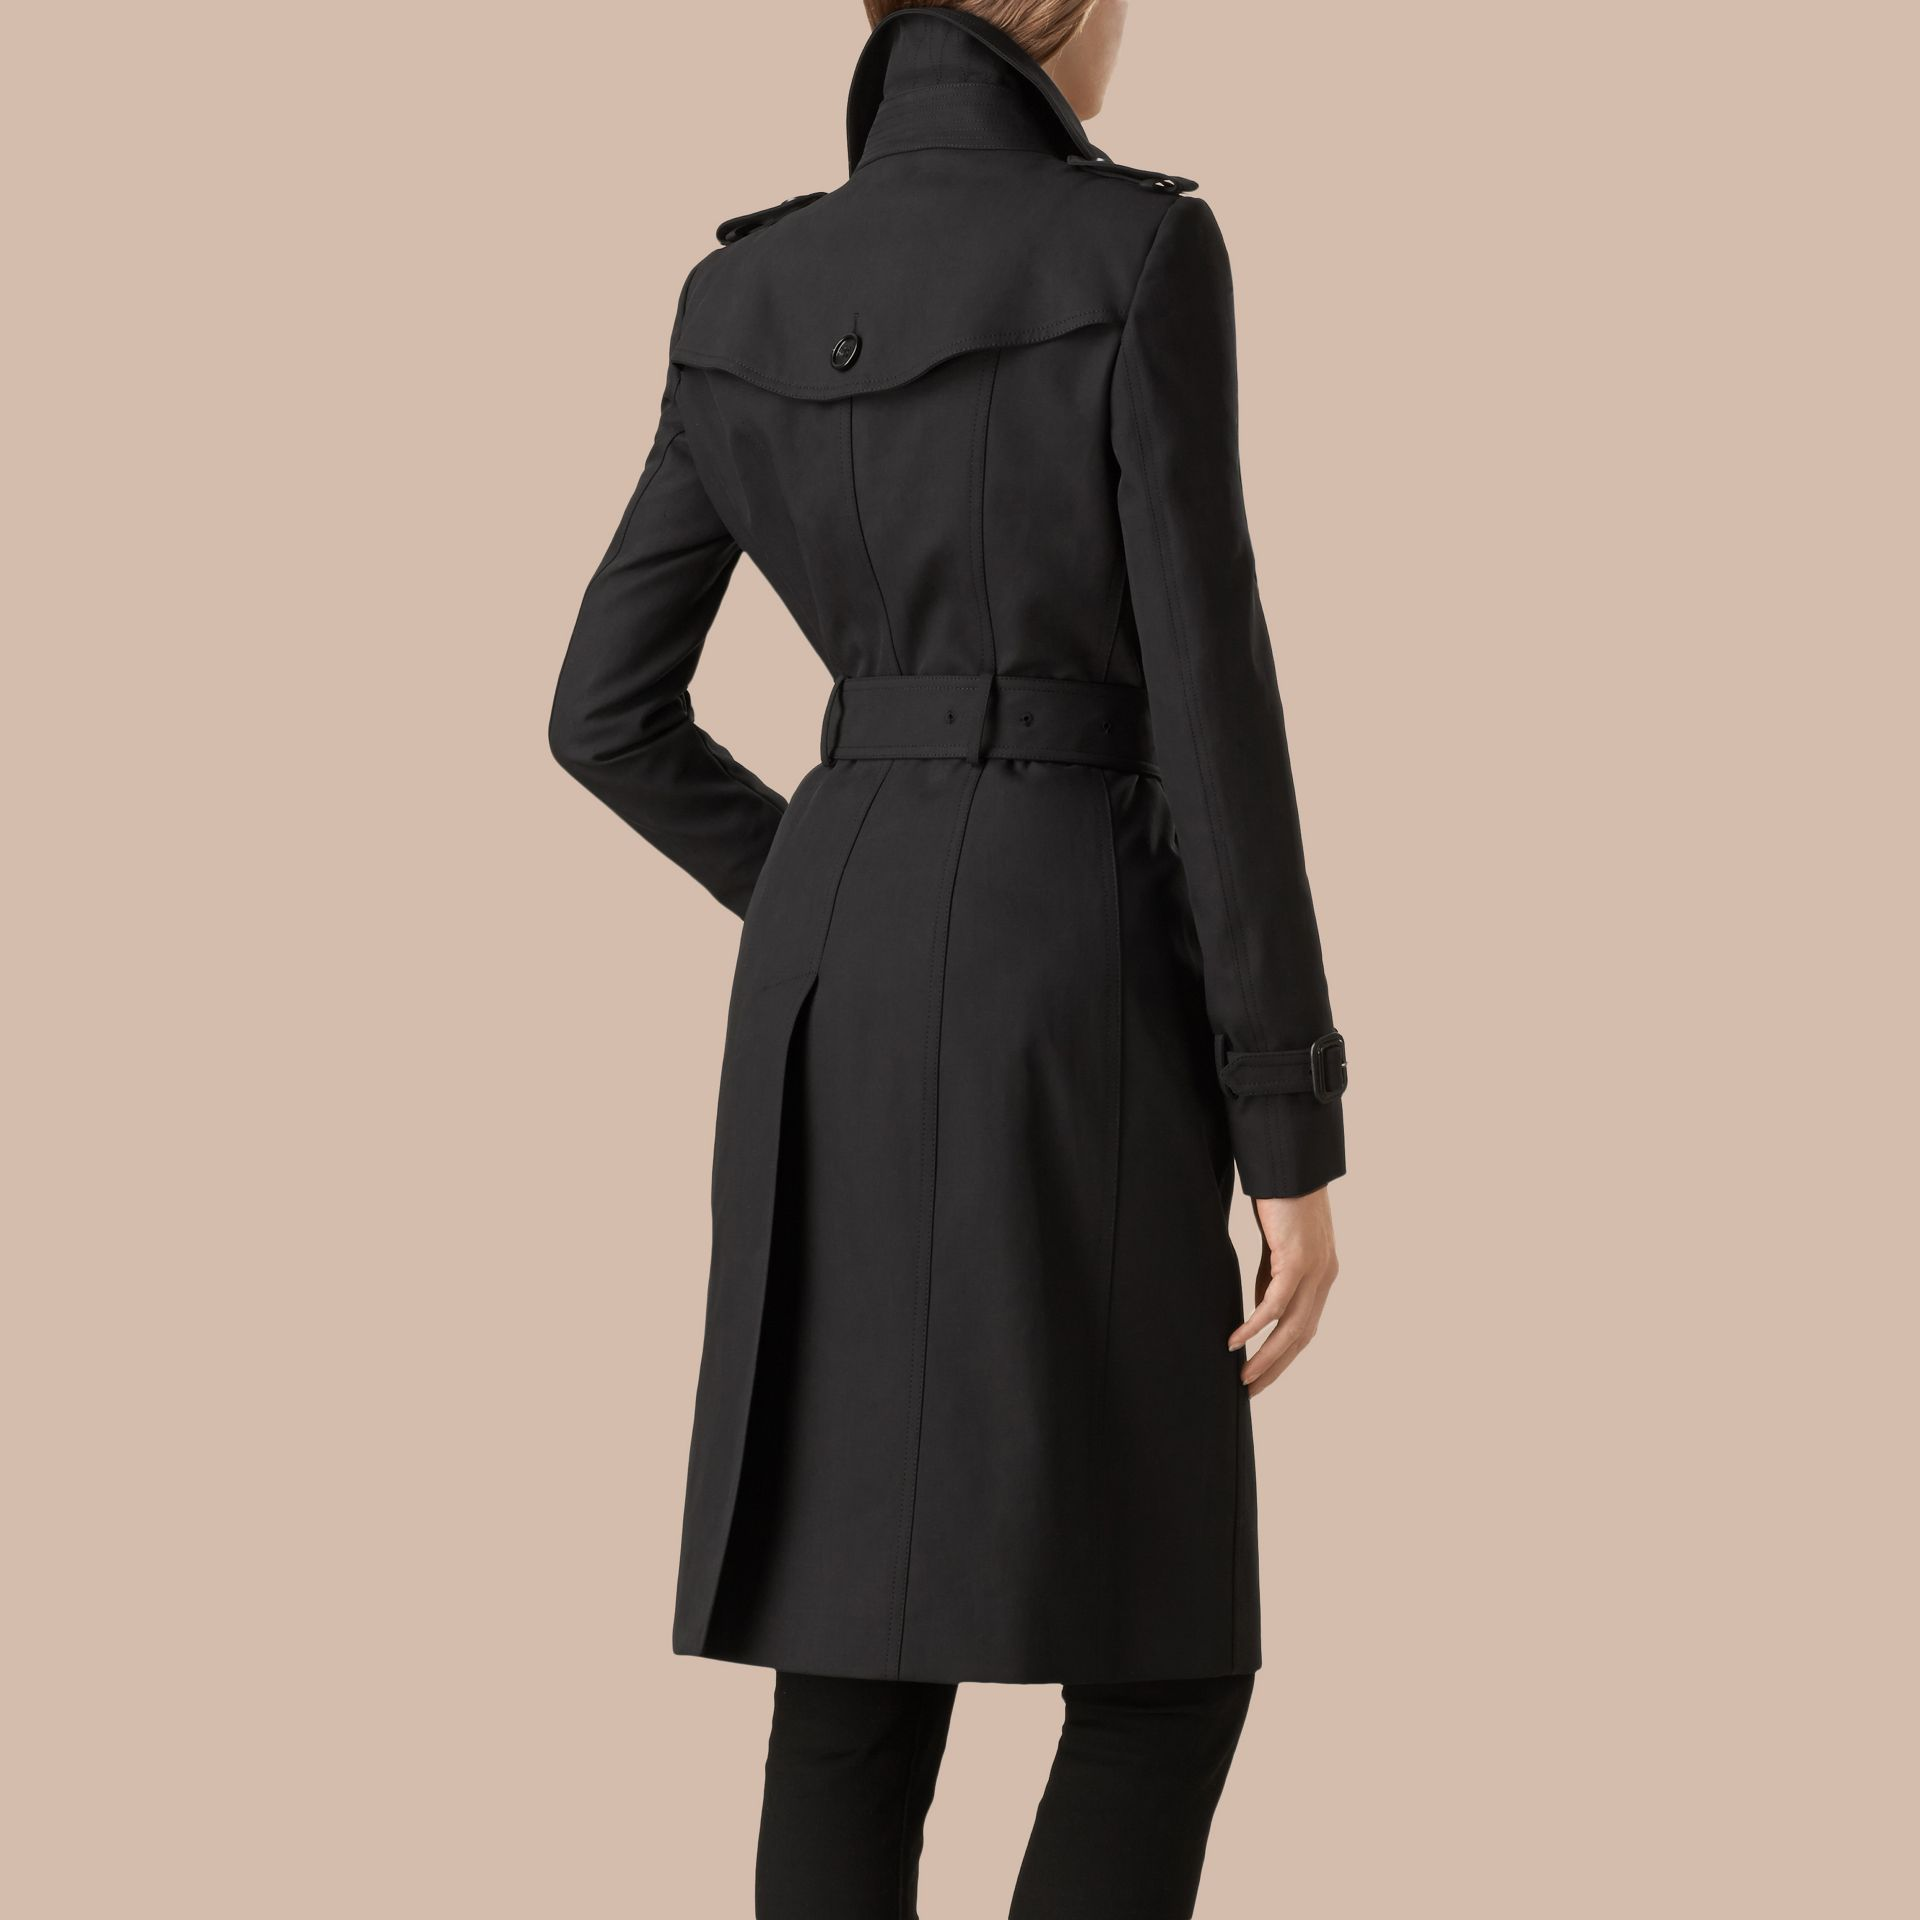 Black Cotton Gabardine Trench Coat Black - gallery image 4